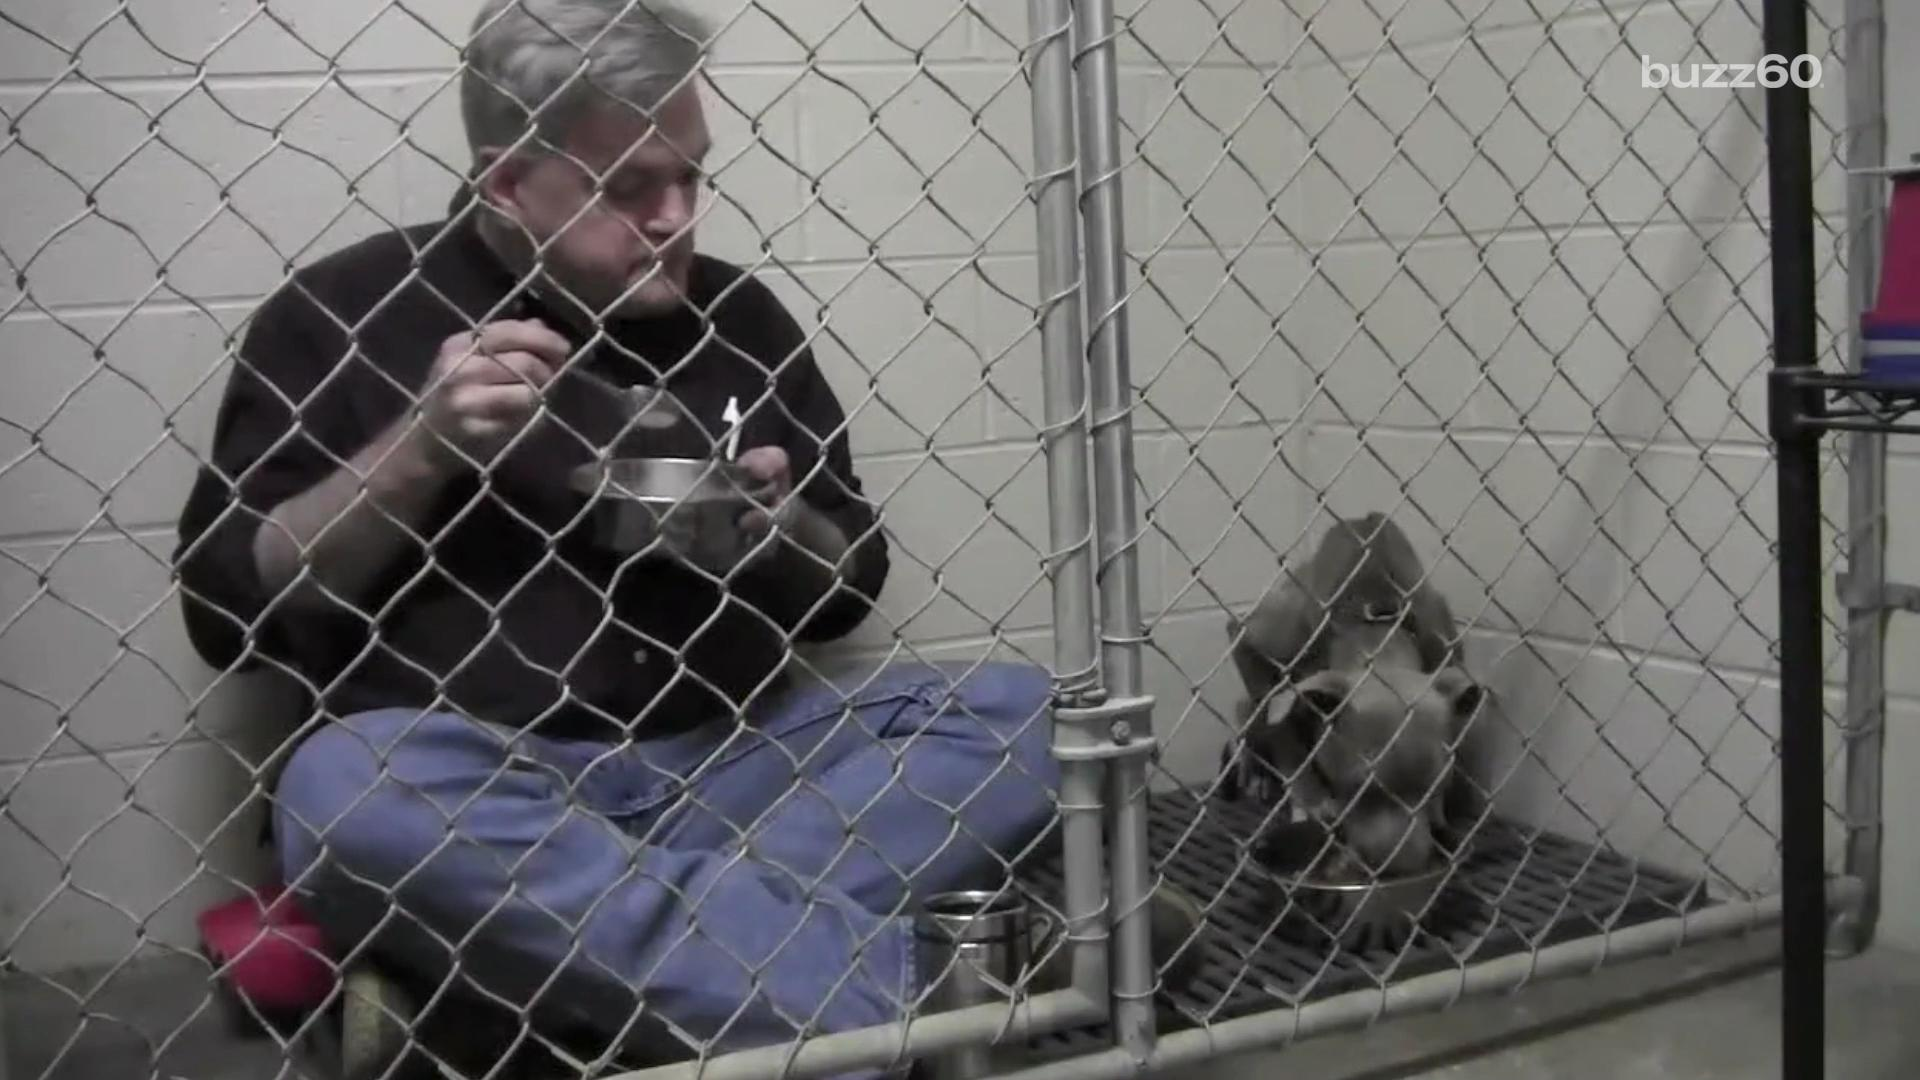 Caring veterinarian eats meals with neglected pit bull inside her cage